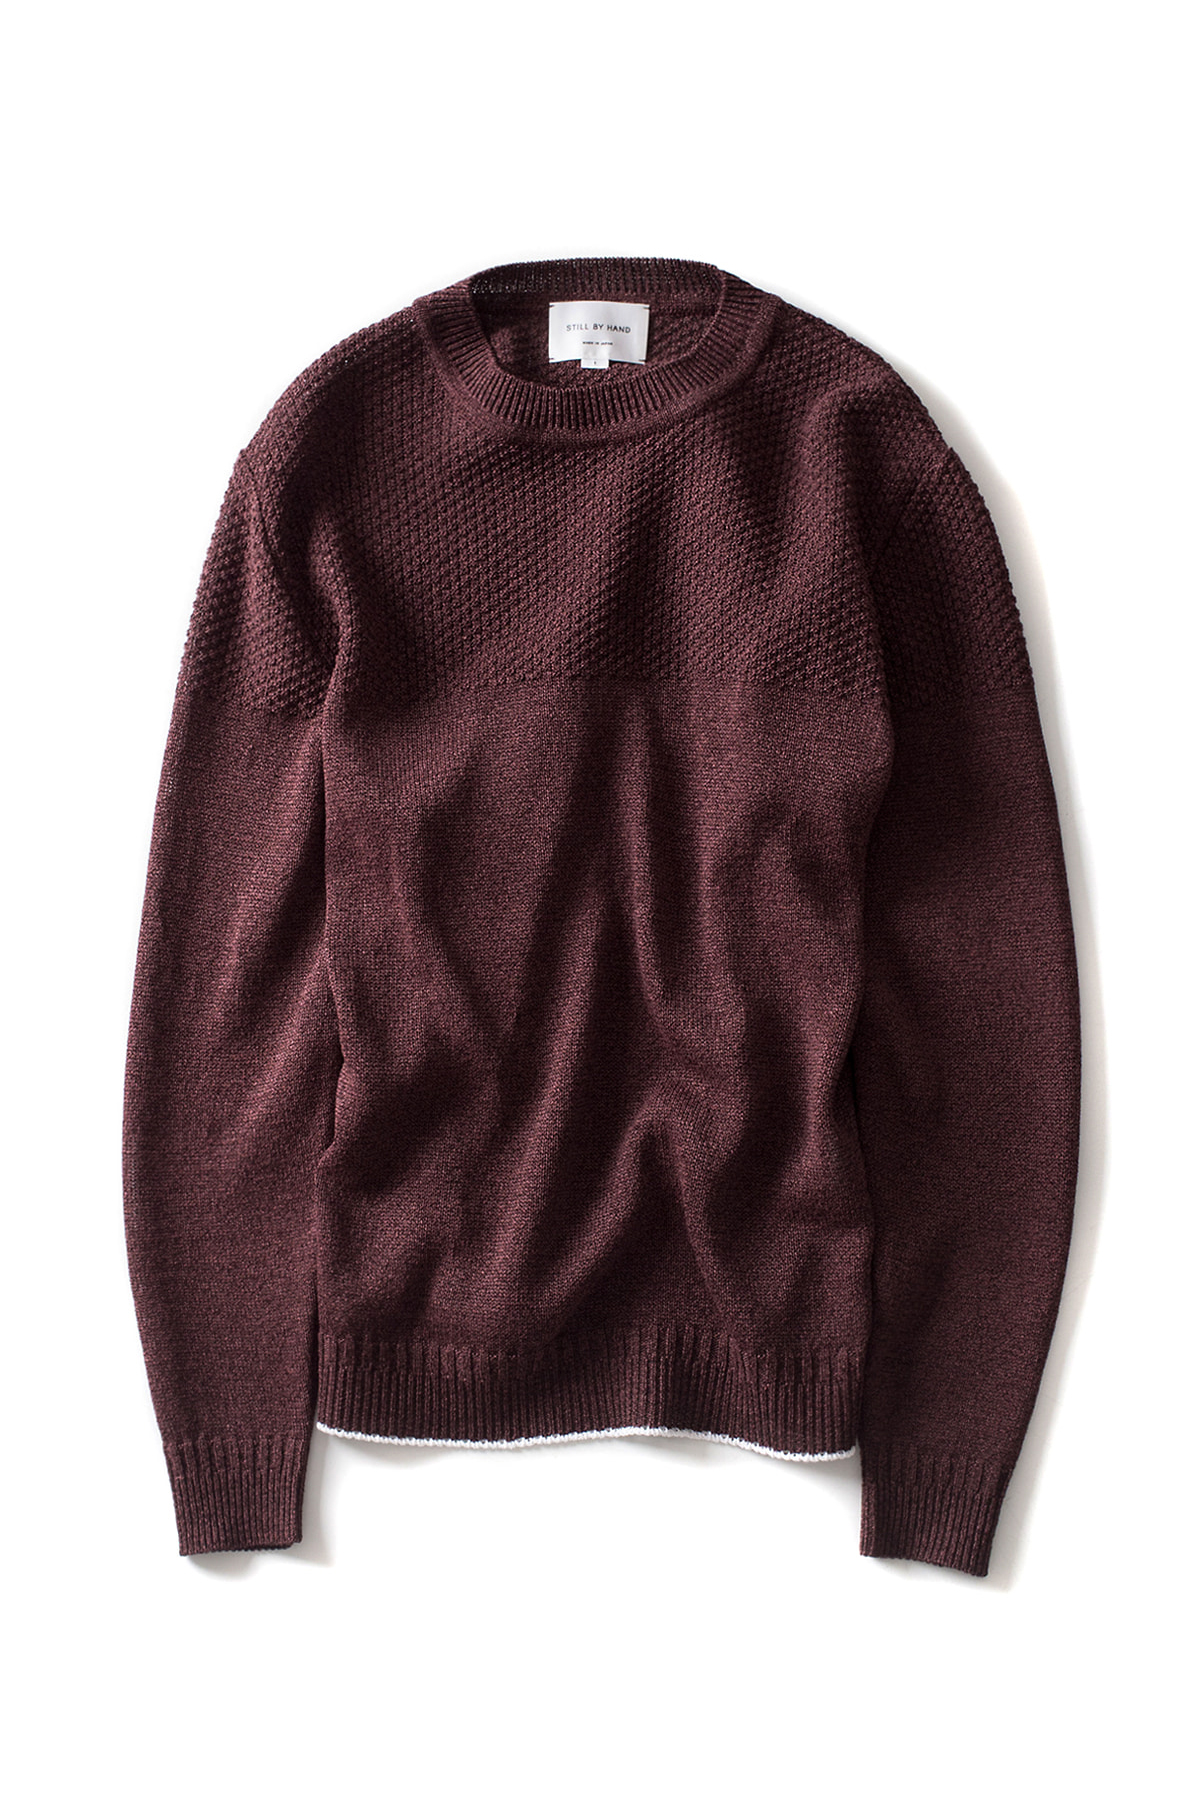 Still by Hand : Long Sleeve Paper Knit (Wine)